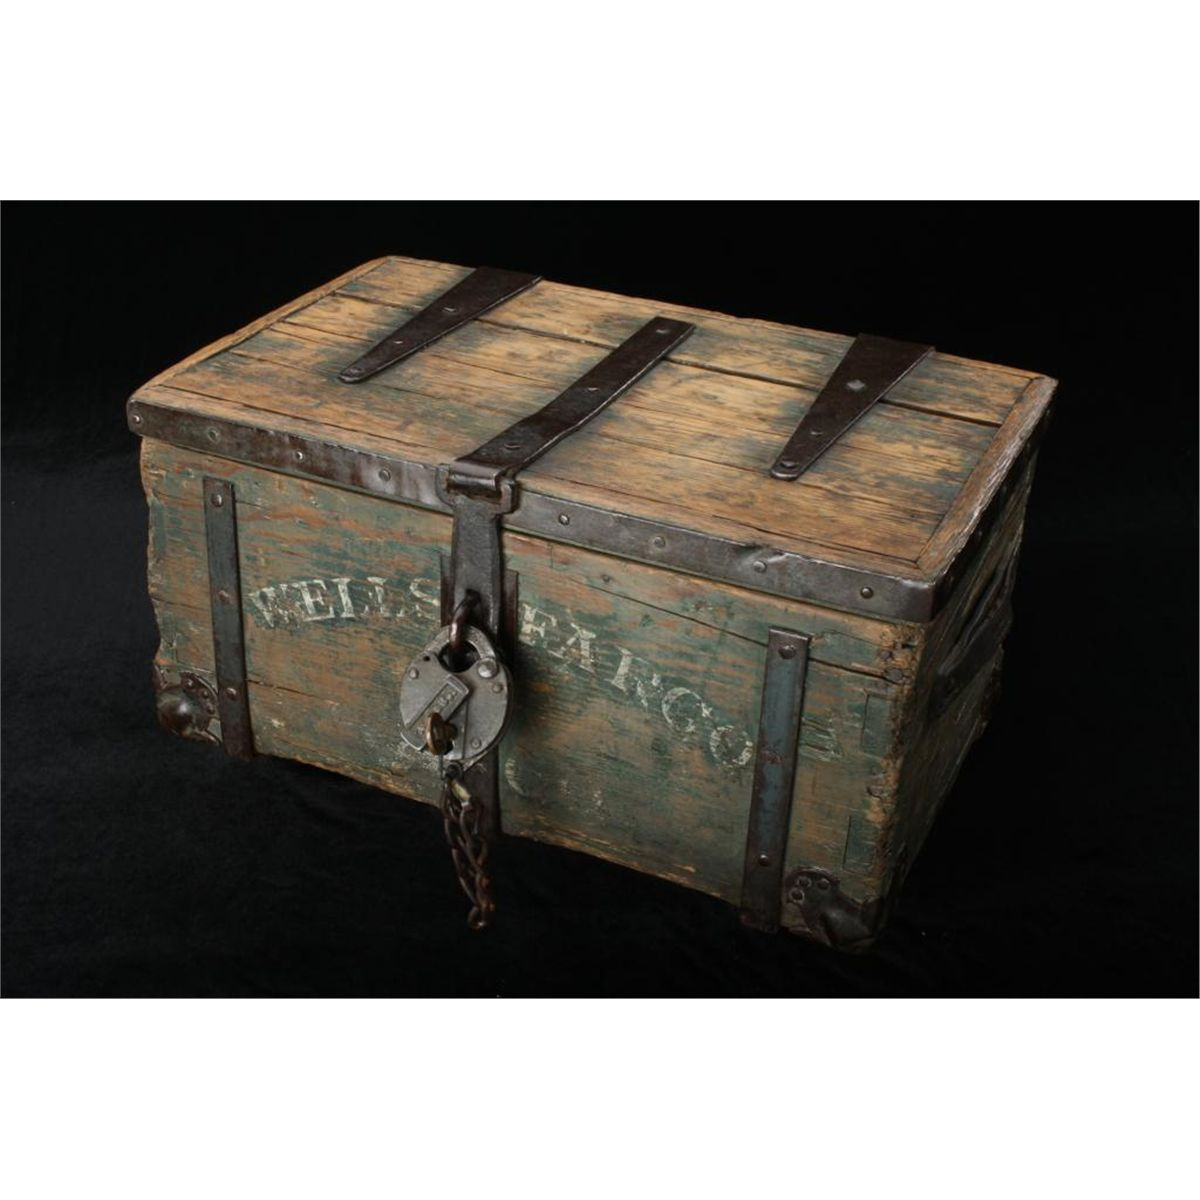 Original Wells Fargo Strong Box With Correct Lock Retaining